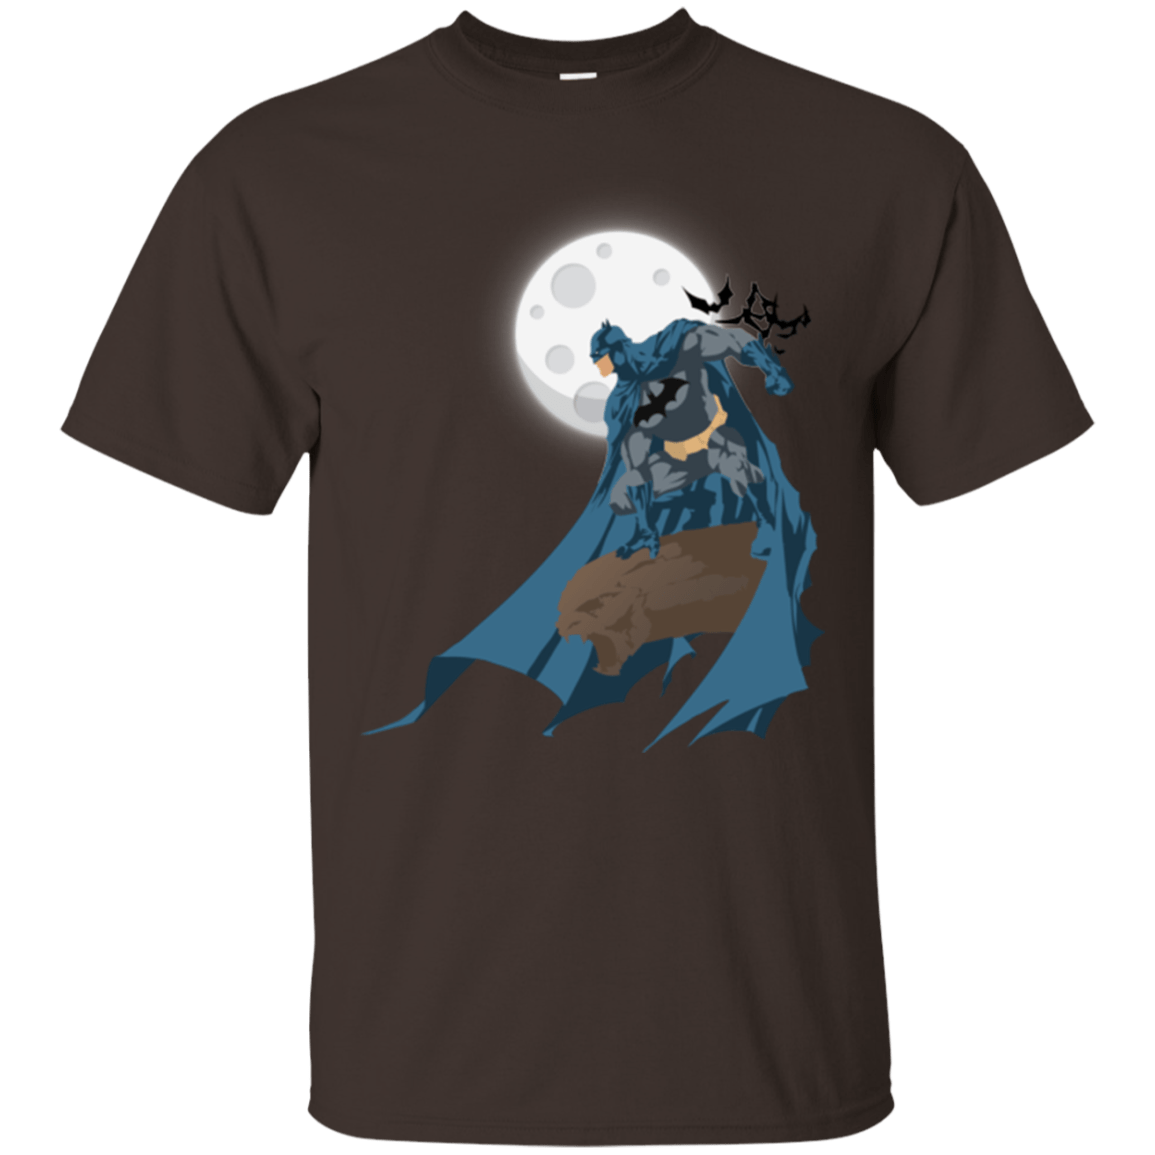 T-Shirts Dark Chocolate / Small Batman T-Shirt